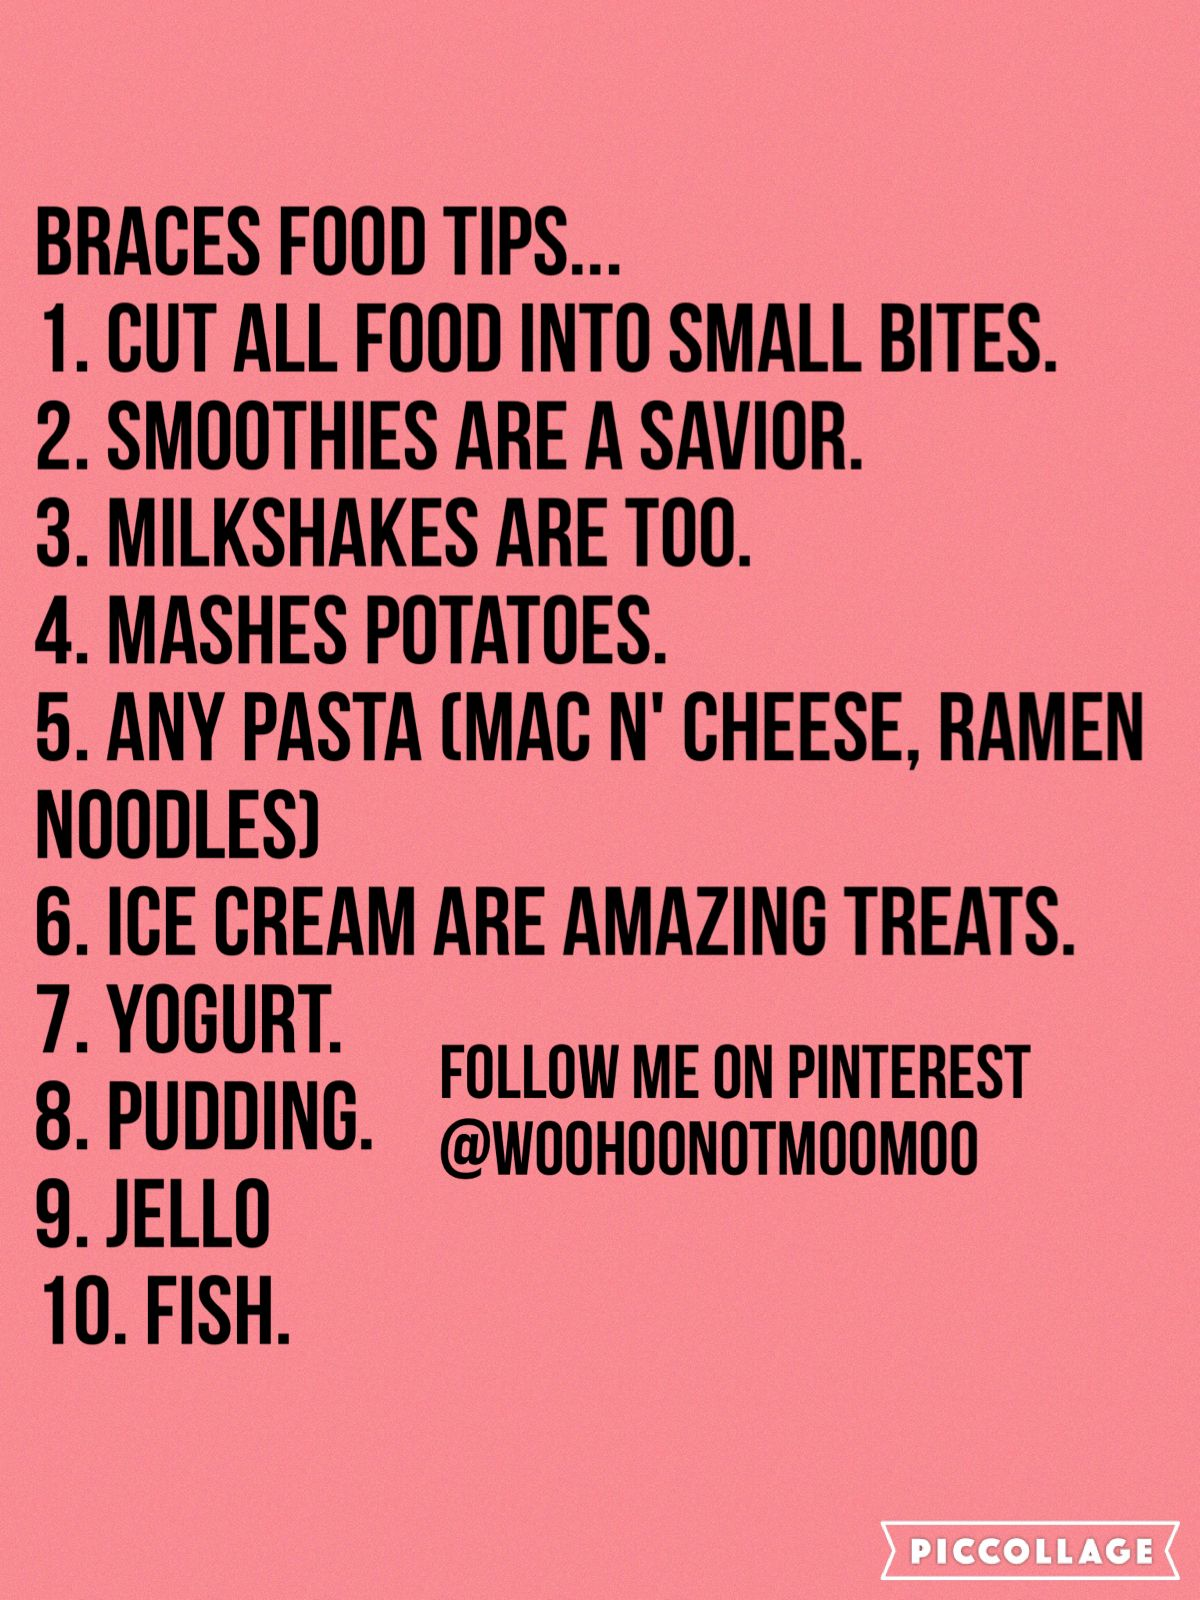 What Kind Of Food Can You Eat After Getting Braces